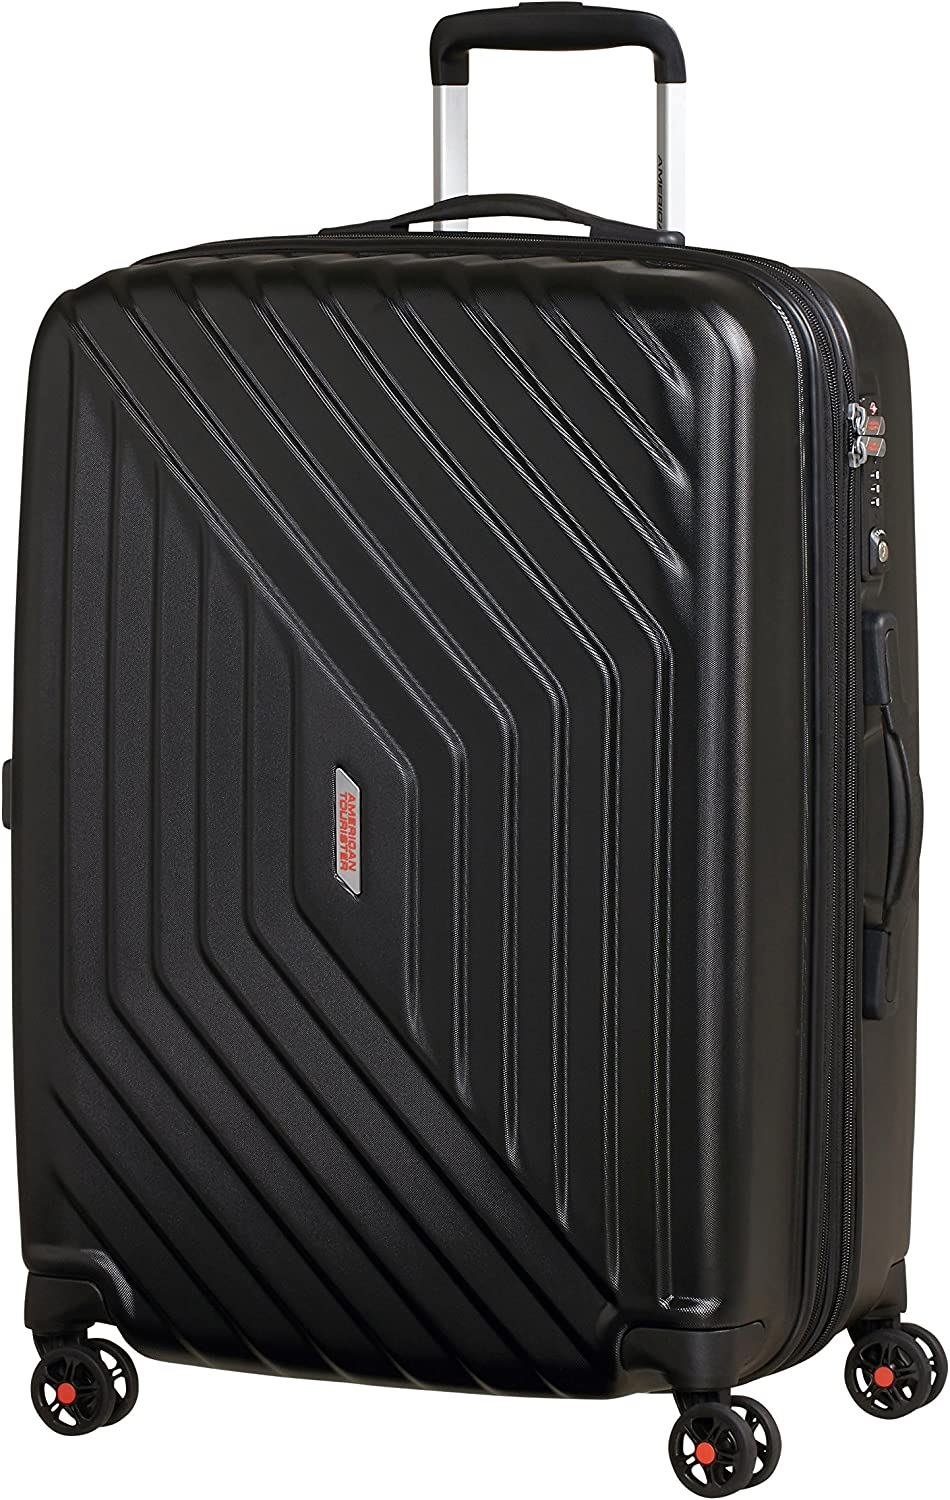 American Tourister Air Force 1 - Maleta, Negro (Galaxy Black), M (66cm-69L)